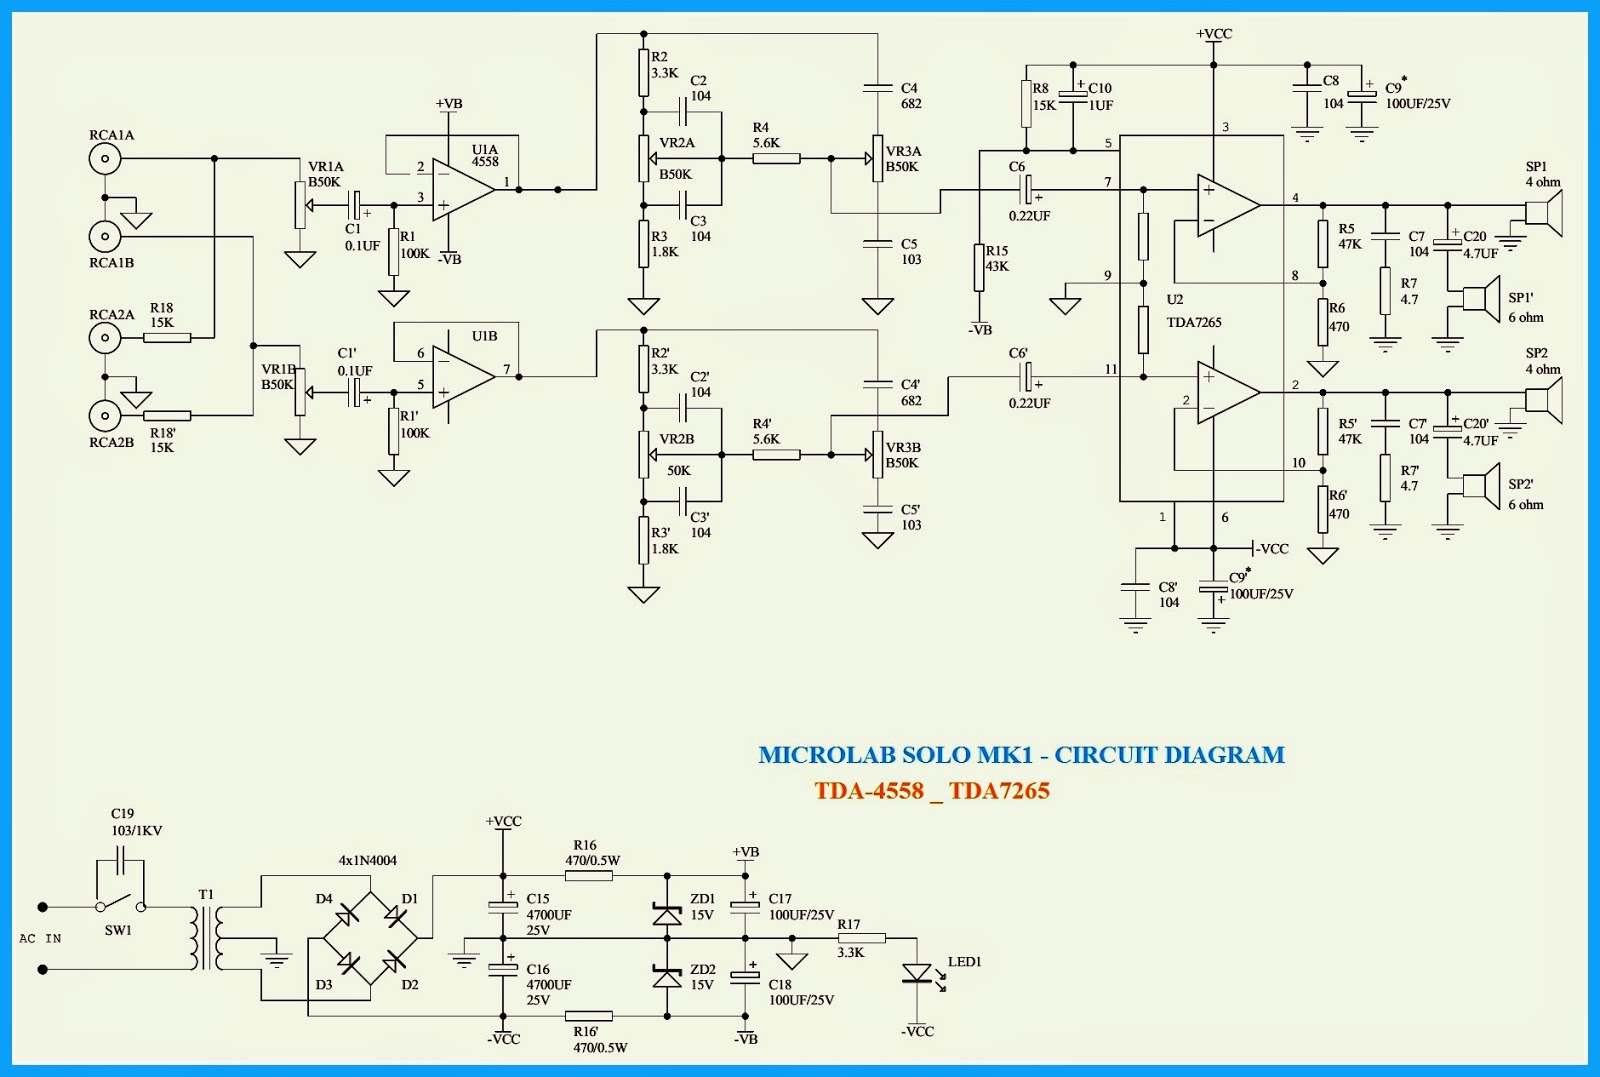 electronic circuit boards sdvr8jat v1 0 schematic diagrams wiring  electronic circuit boards sdvr8jat v1.0 schematic diagrams #4